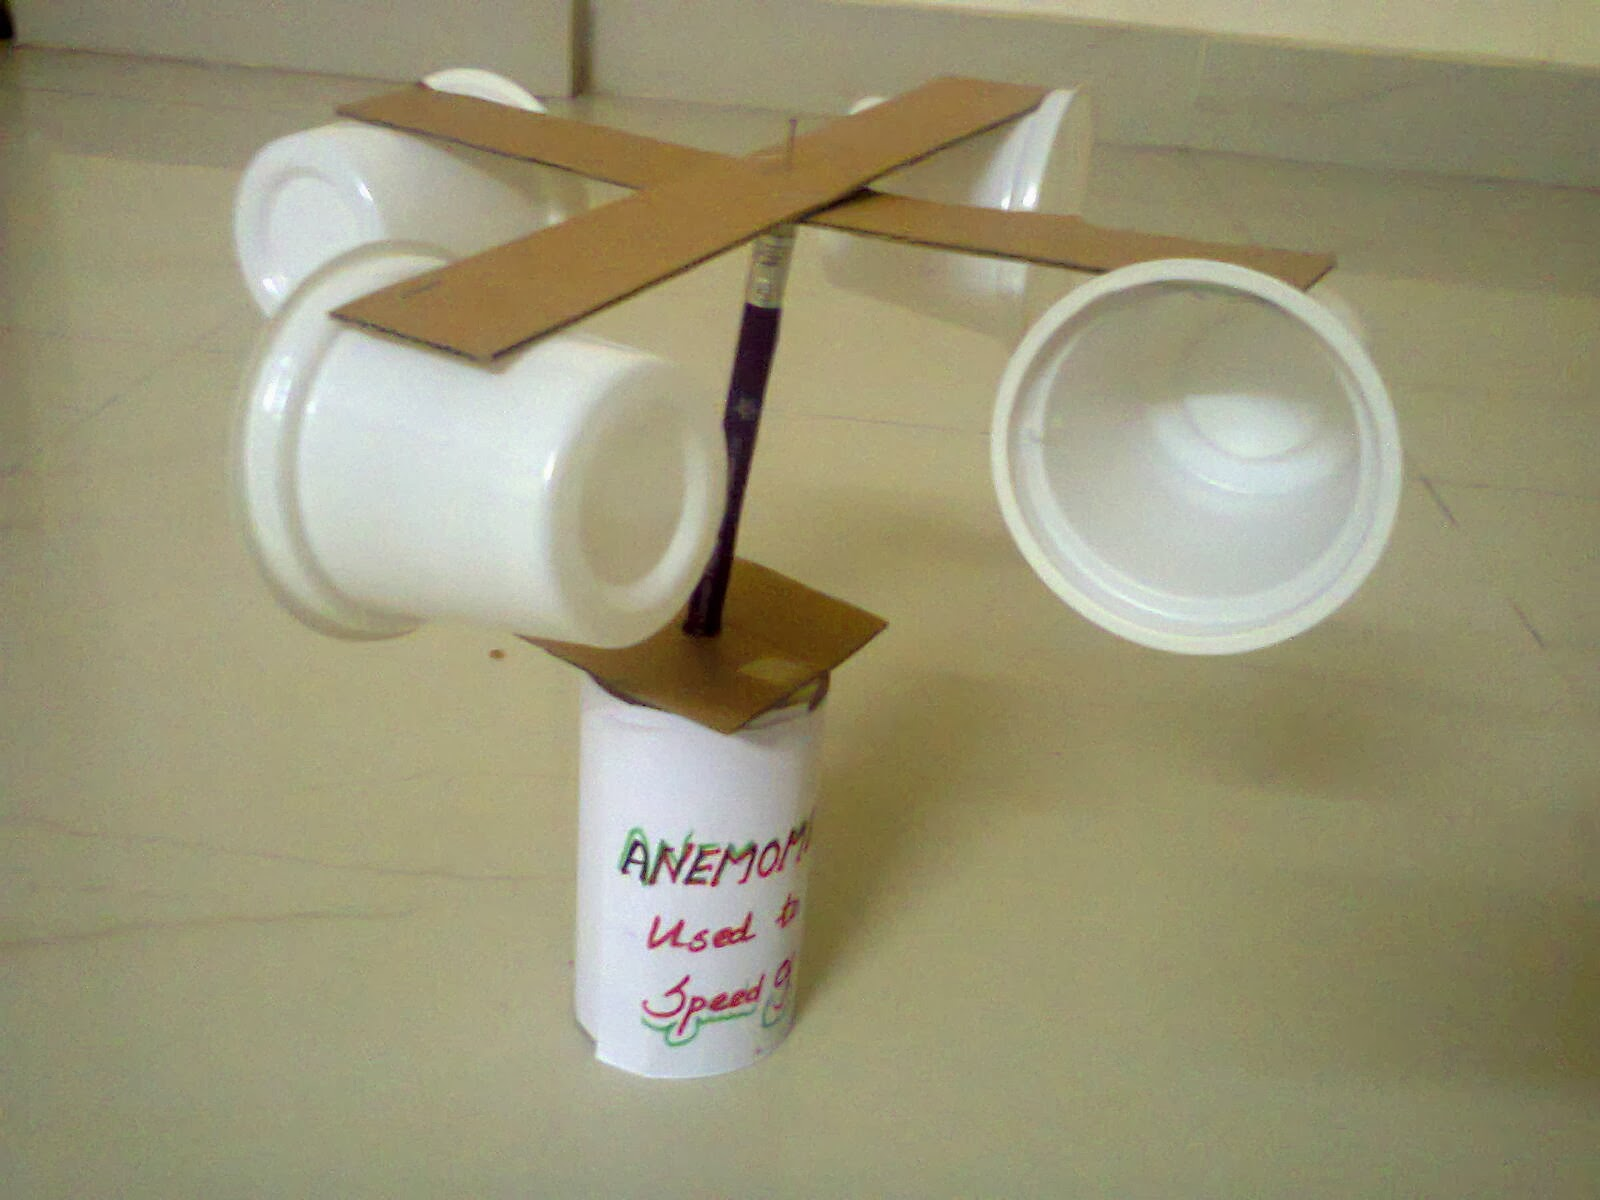 Creative of rainy anemometer for Make project using waste materials